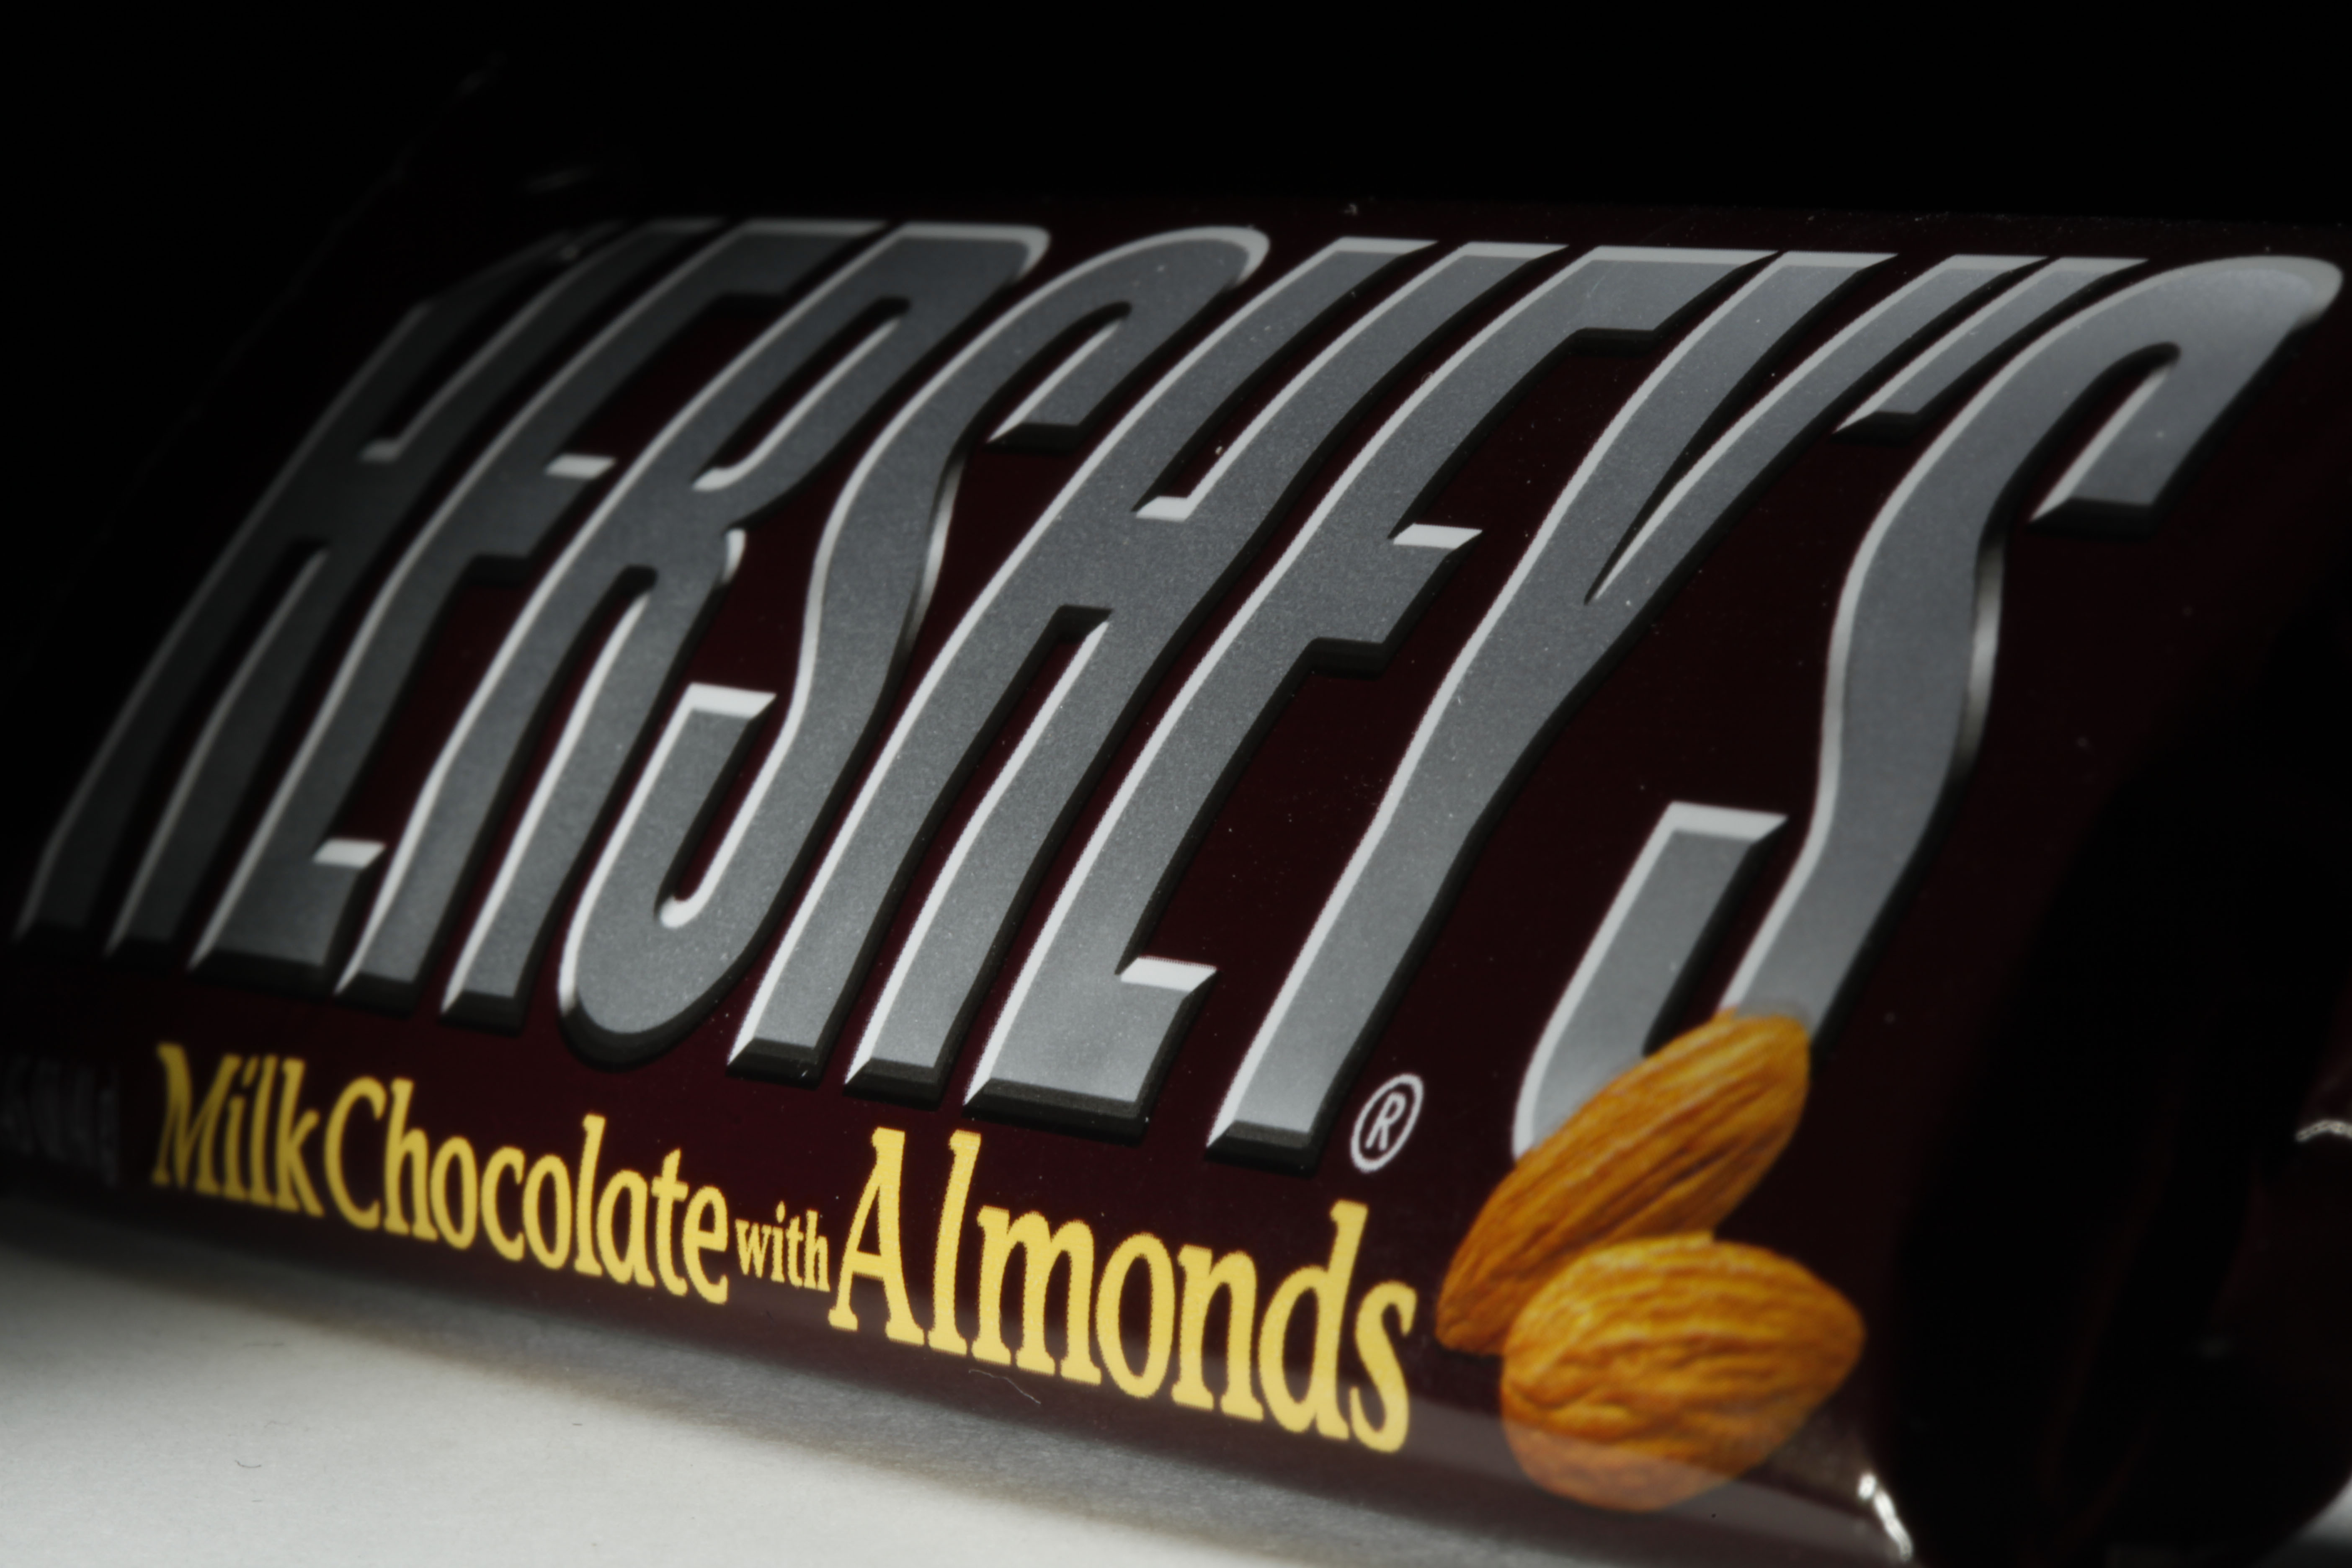 This April 21, 2020 file photo shows a Hershey's chocolate bar with almonds in Philadelphia. Hershey says its Halloween candy sales were up slightly this year despite lower enthusiasm for trick-or-treating amid the pandemic.